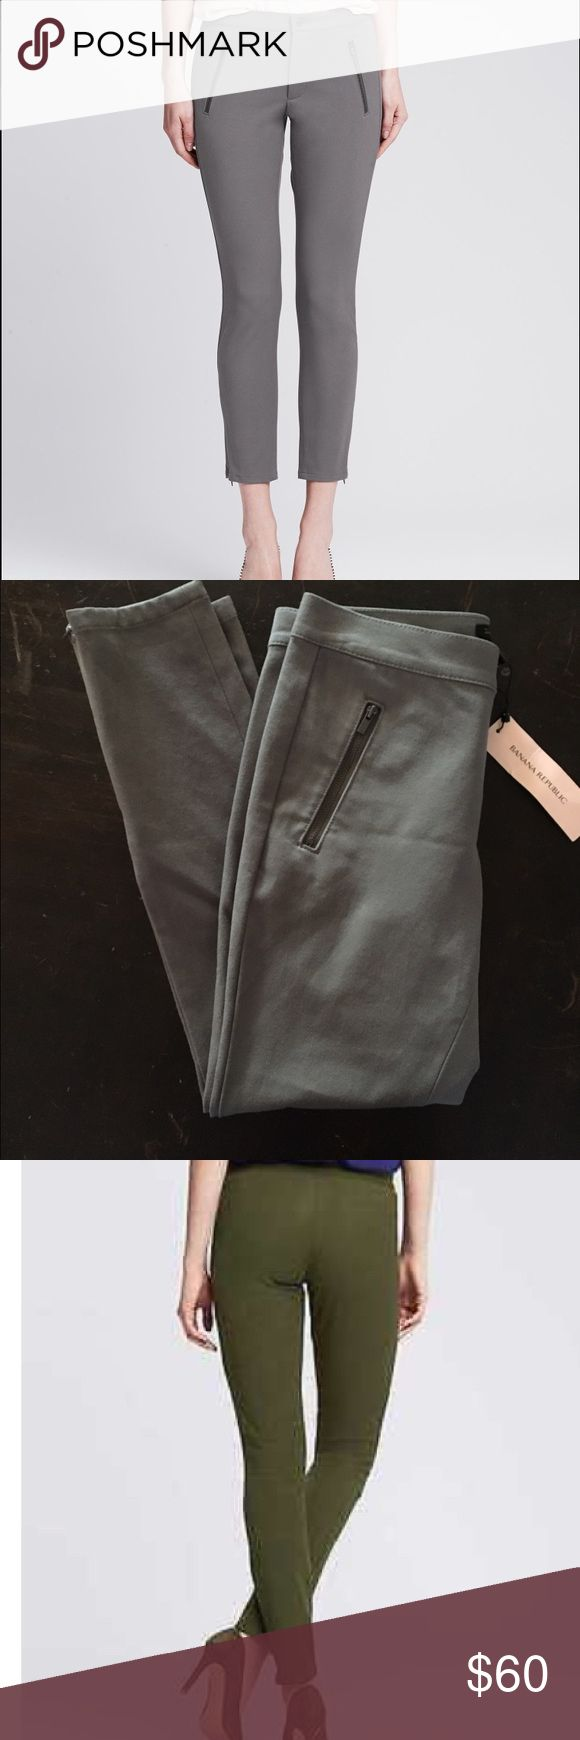 🎉SALE BANANA REPUBLIC Petite Sloan Zip Pants Expert tailoring combines with Banana BANANA REPUBLIC Petite Sloan Zip Legging Pants. Republic's signature Sloan contour stretch fabric to instantly refine and sculpt your figure 56% Rayon, 39% Cotton, 5% Spandex Sits below the waist. Fitted through the hip and thigh. Ankle length. Ankle zips. Zip front pockets. Zip fly with button closure. Measurements to come. I LOVE THESE, but they're a little too tight on me. Pants are grey, the last two pics…